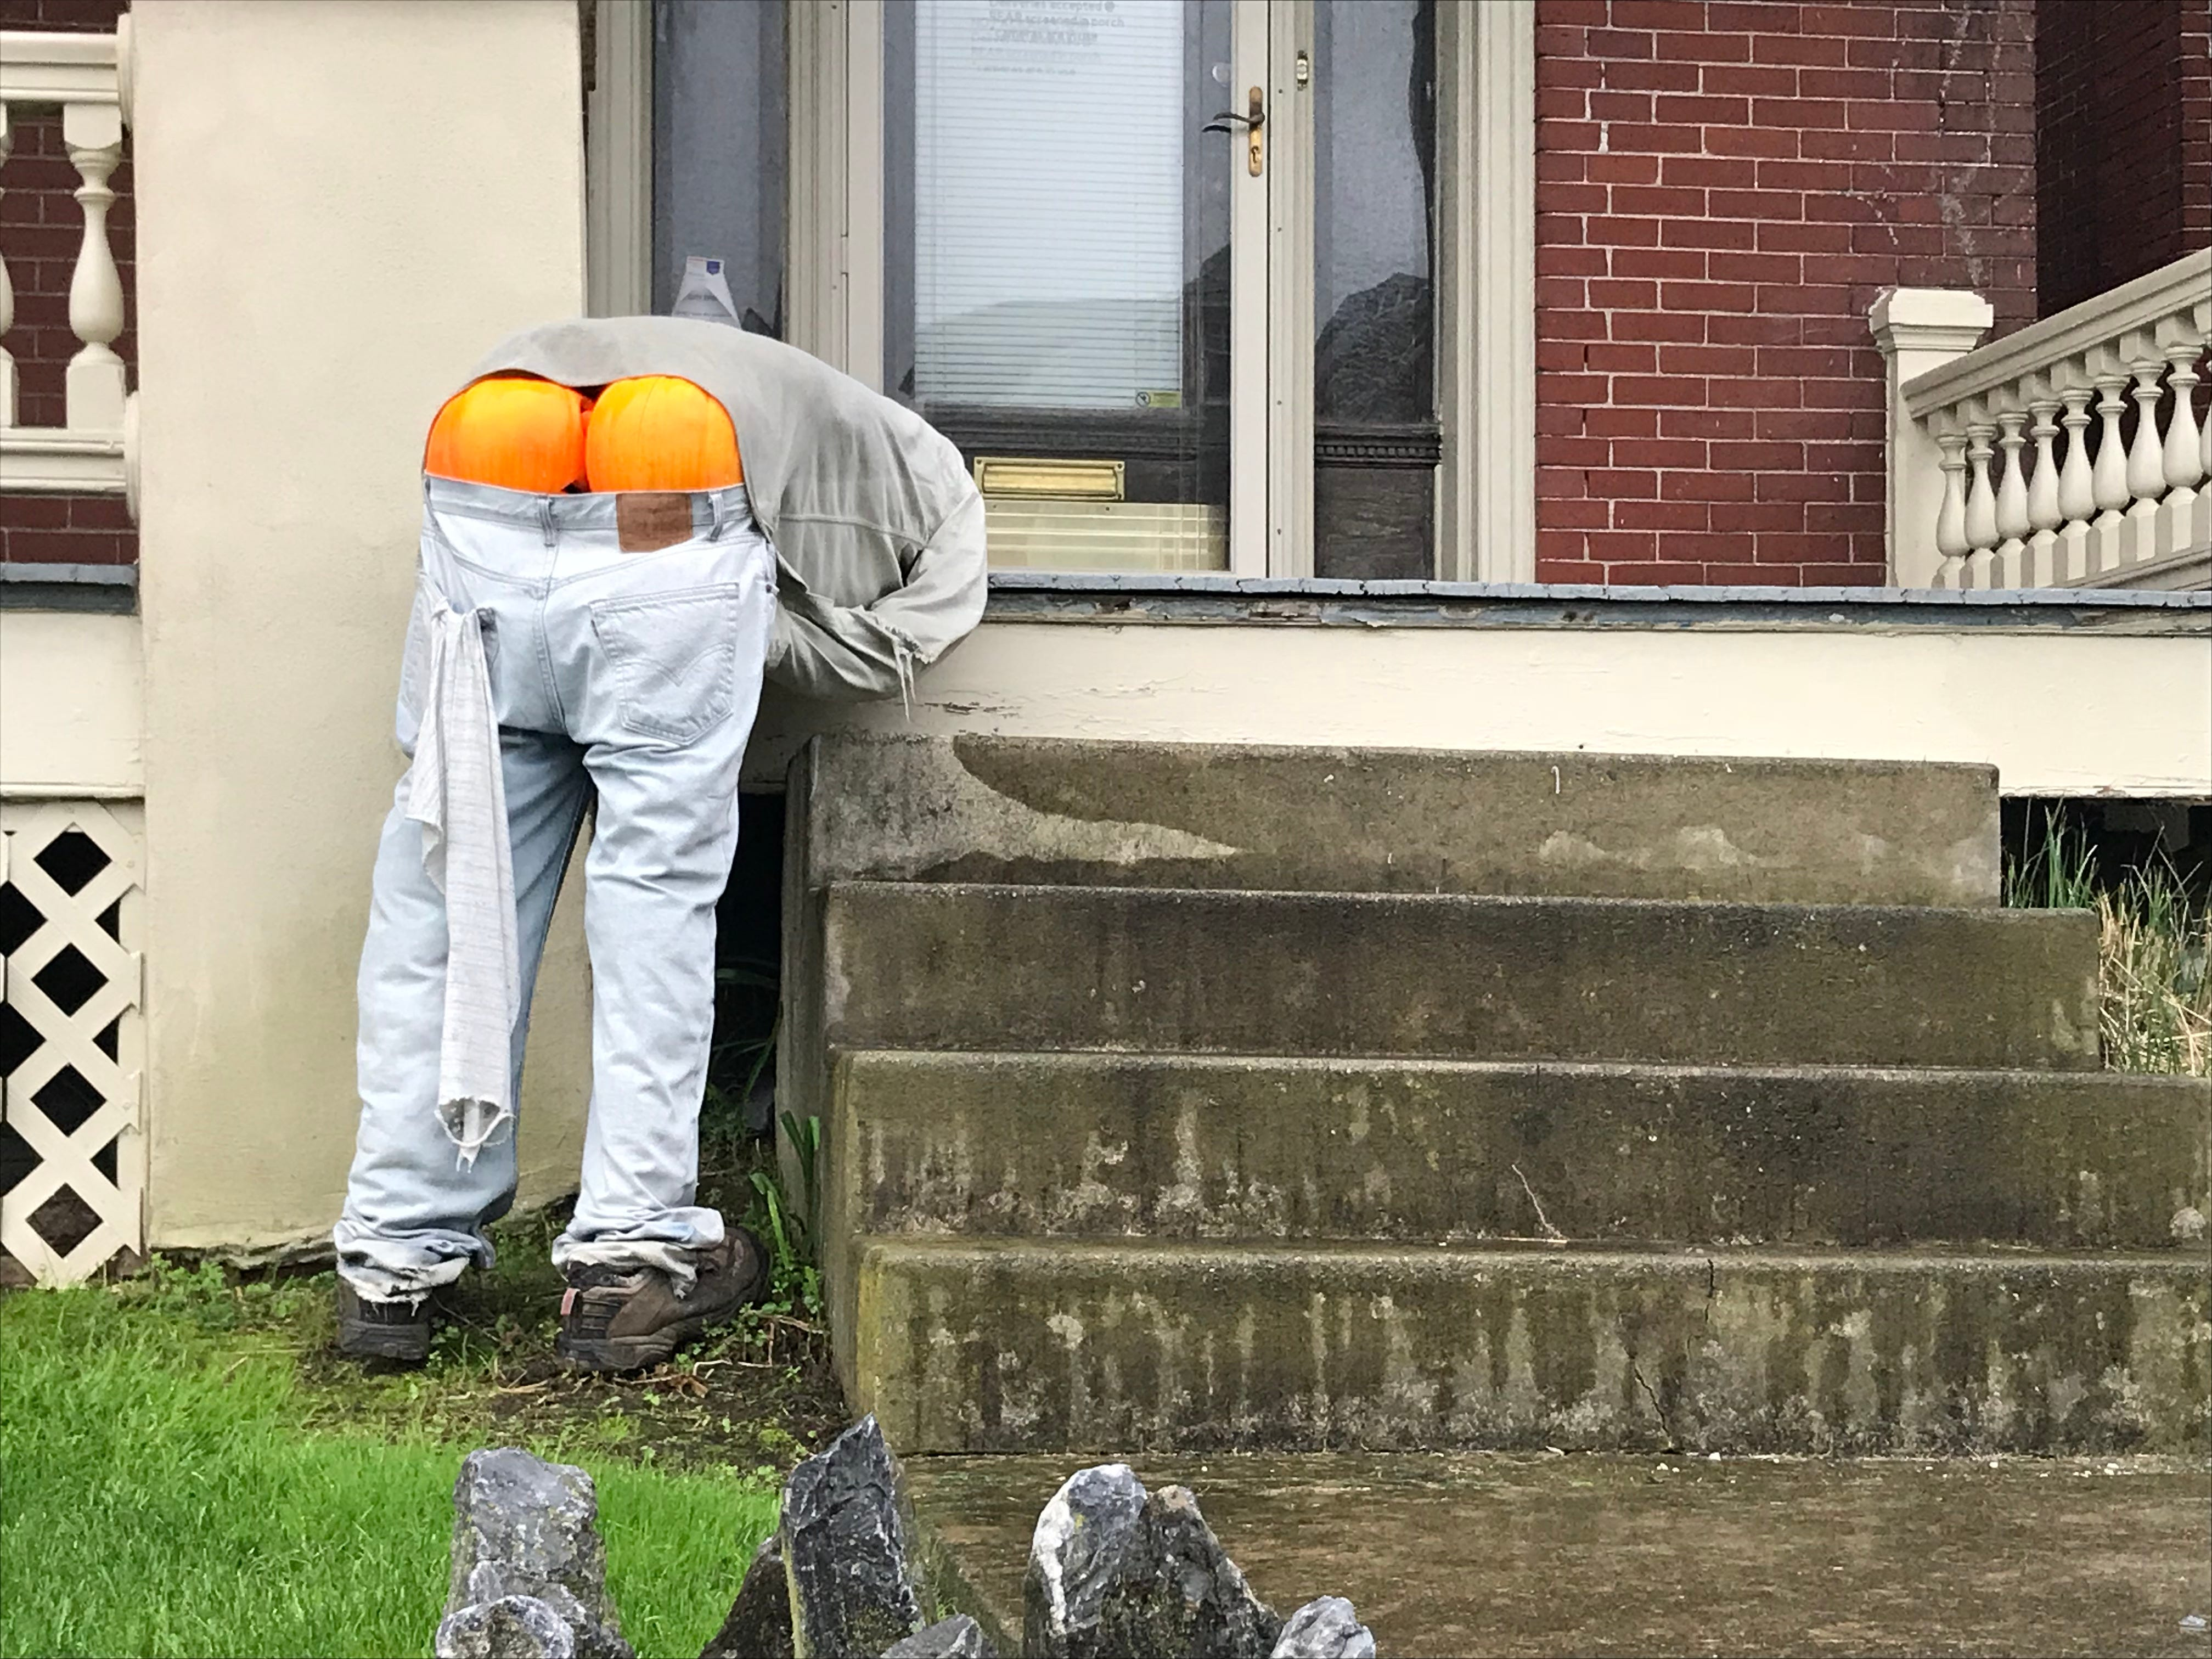 A resident on State Street in Ephrata Borough, Lancaster County, got humorously creative with their 2018 fall decorating.